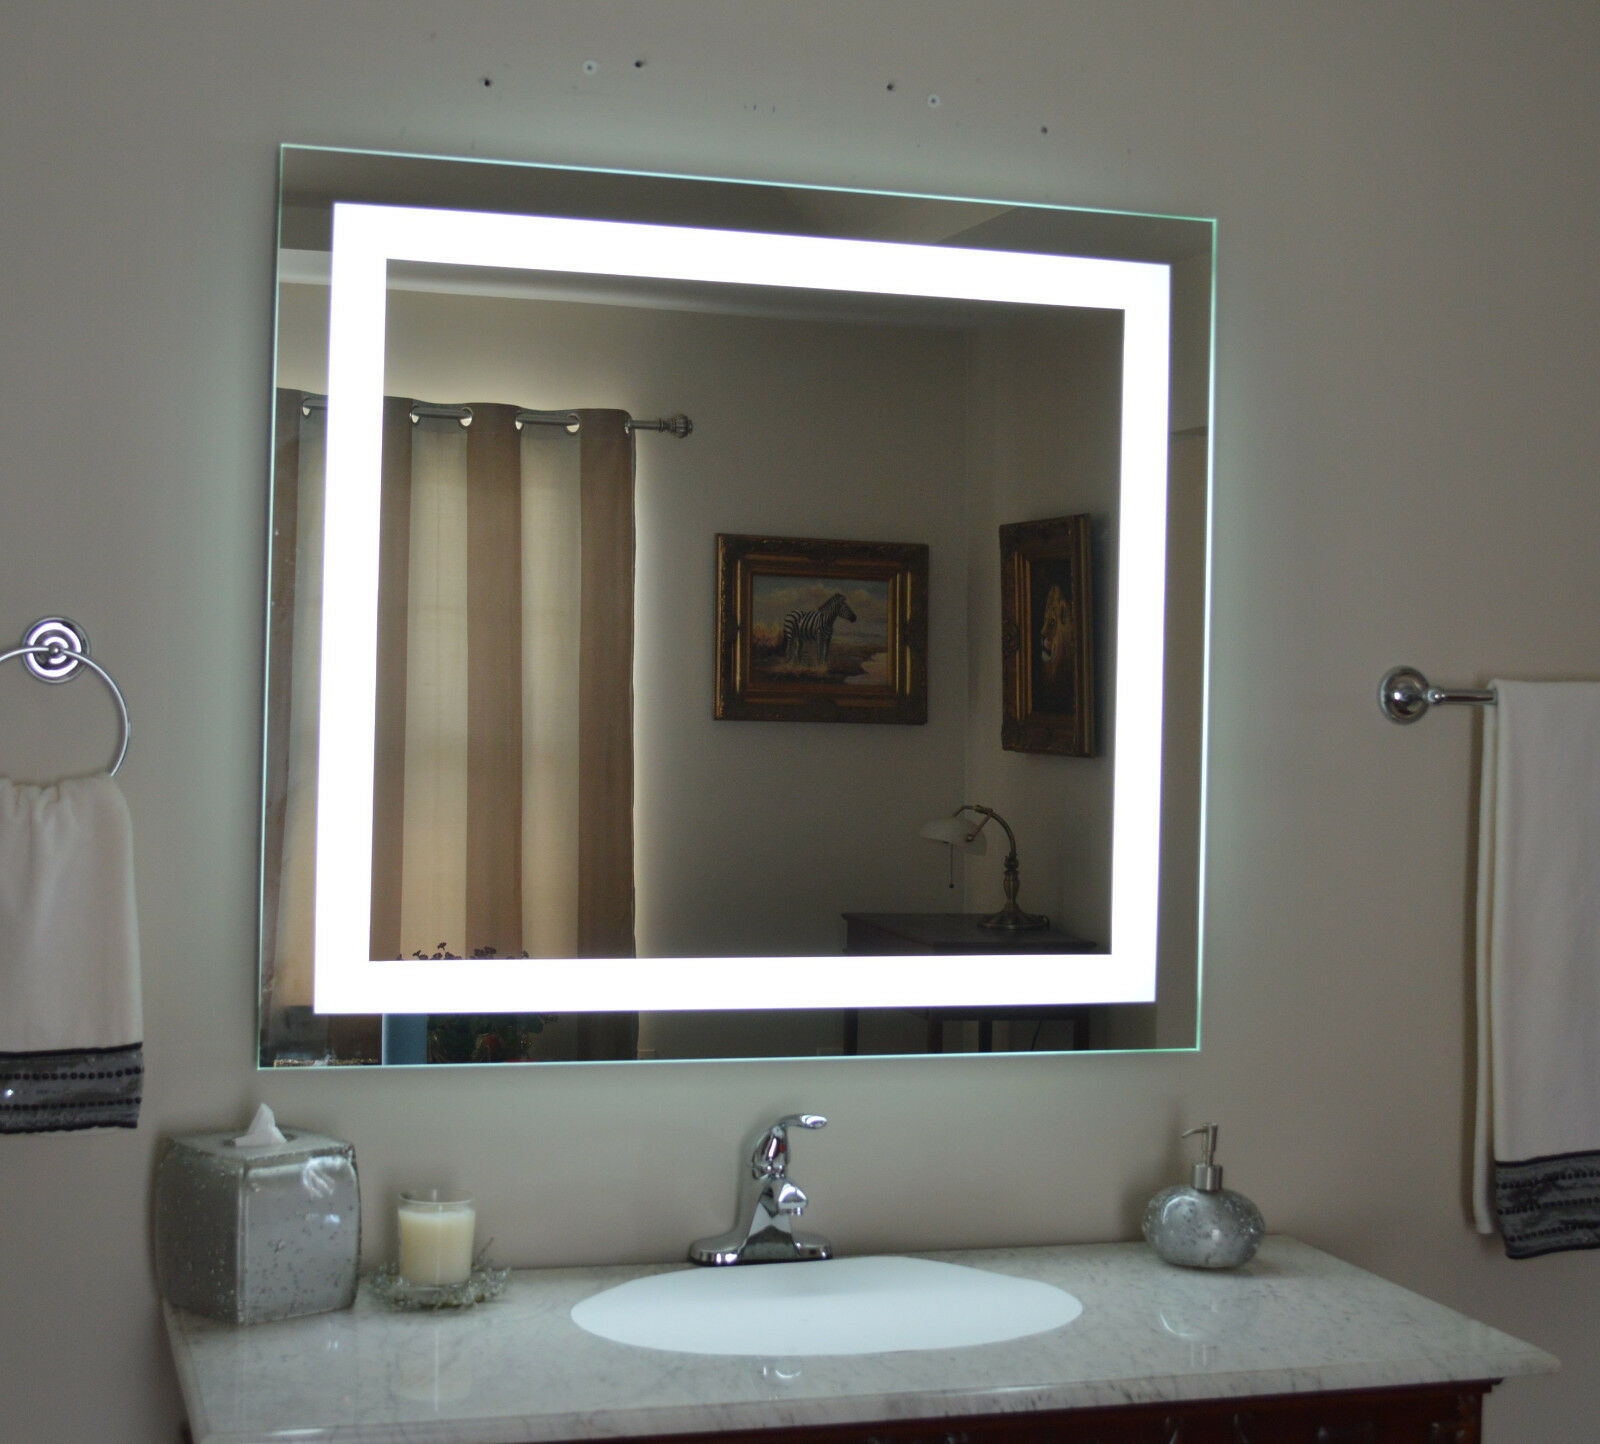 Lighted bathroom vanity mirror led wall mounted 48 - Bathroom vanity mirror side lights ...